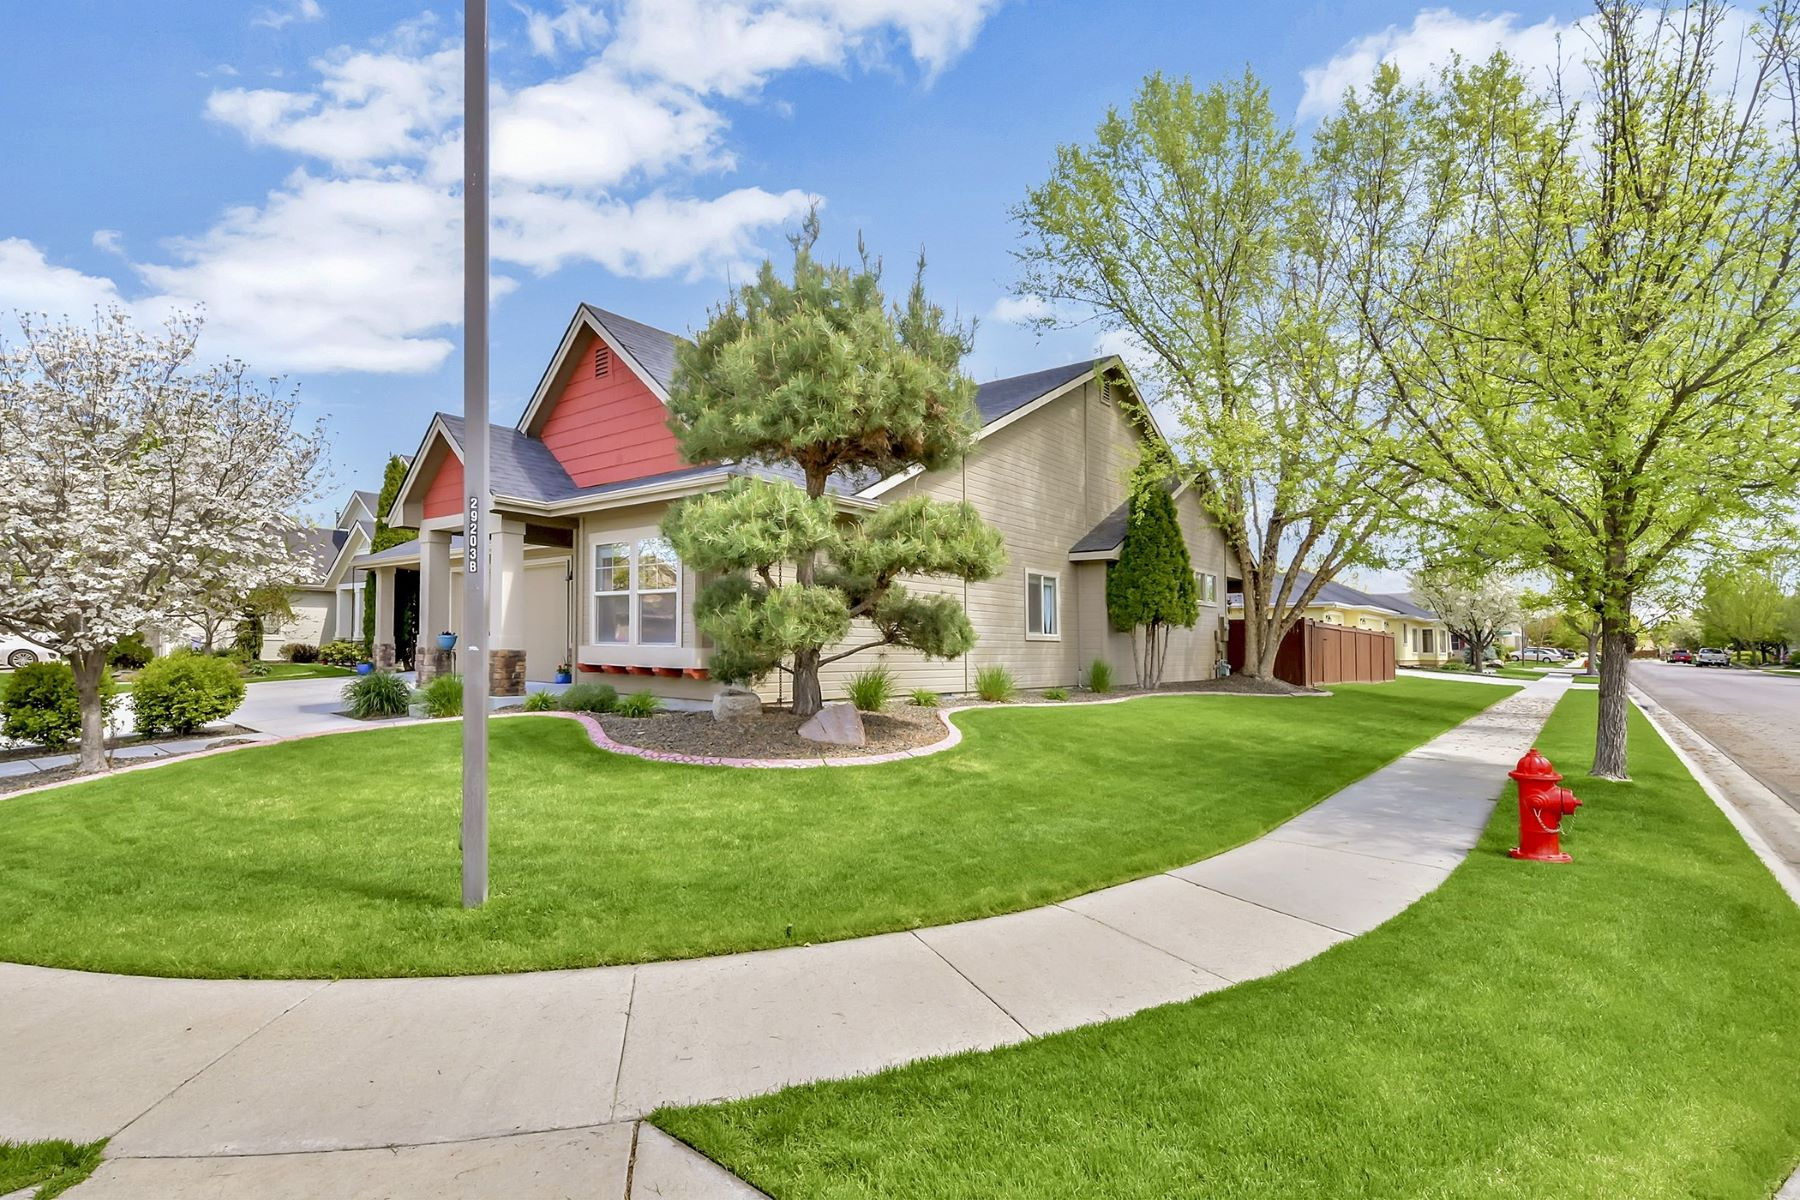 Single Family Homes for Sale at 3662 Legacy Woods Ave Meridian, Idaho 83646 United States